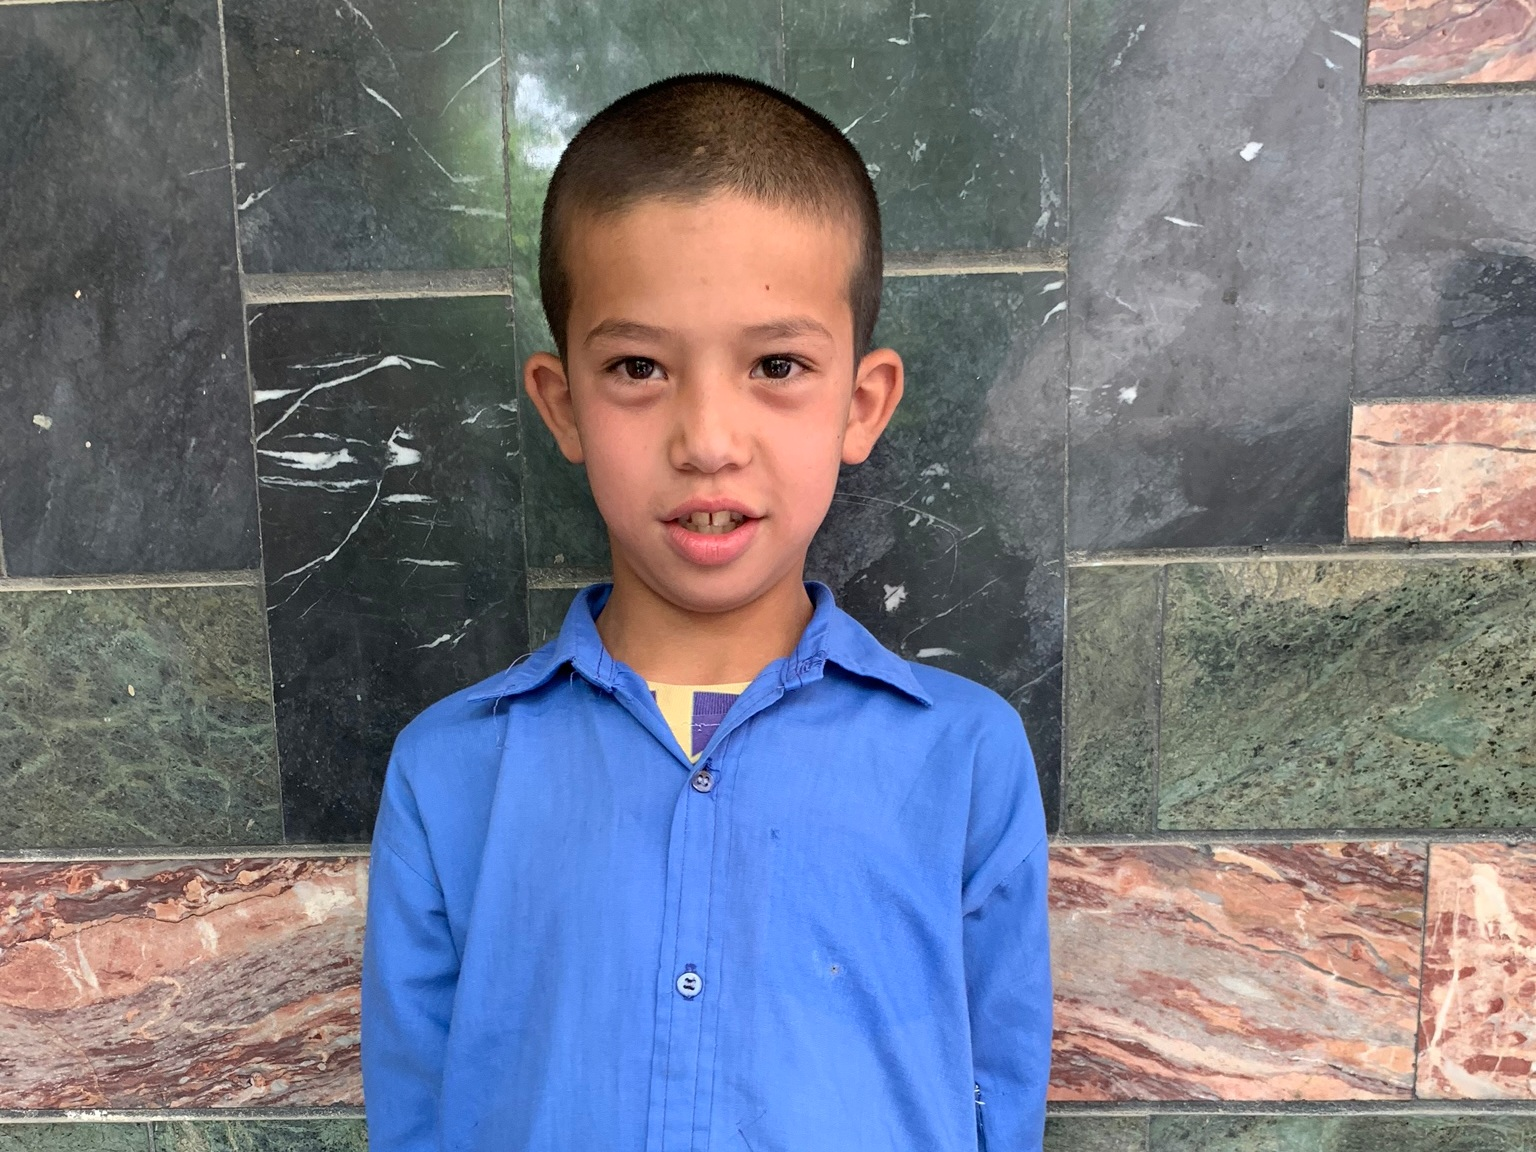 Saeed Alyas, Age 10 - Saeed Alias has 5 siblings. His mother is without work at this time and his father is a day laborer.BE SAEED ALYAS'S PARTNER>